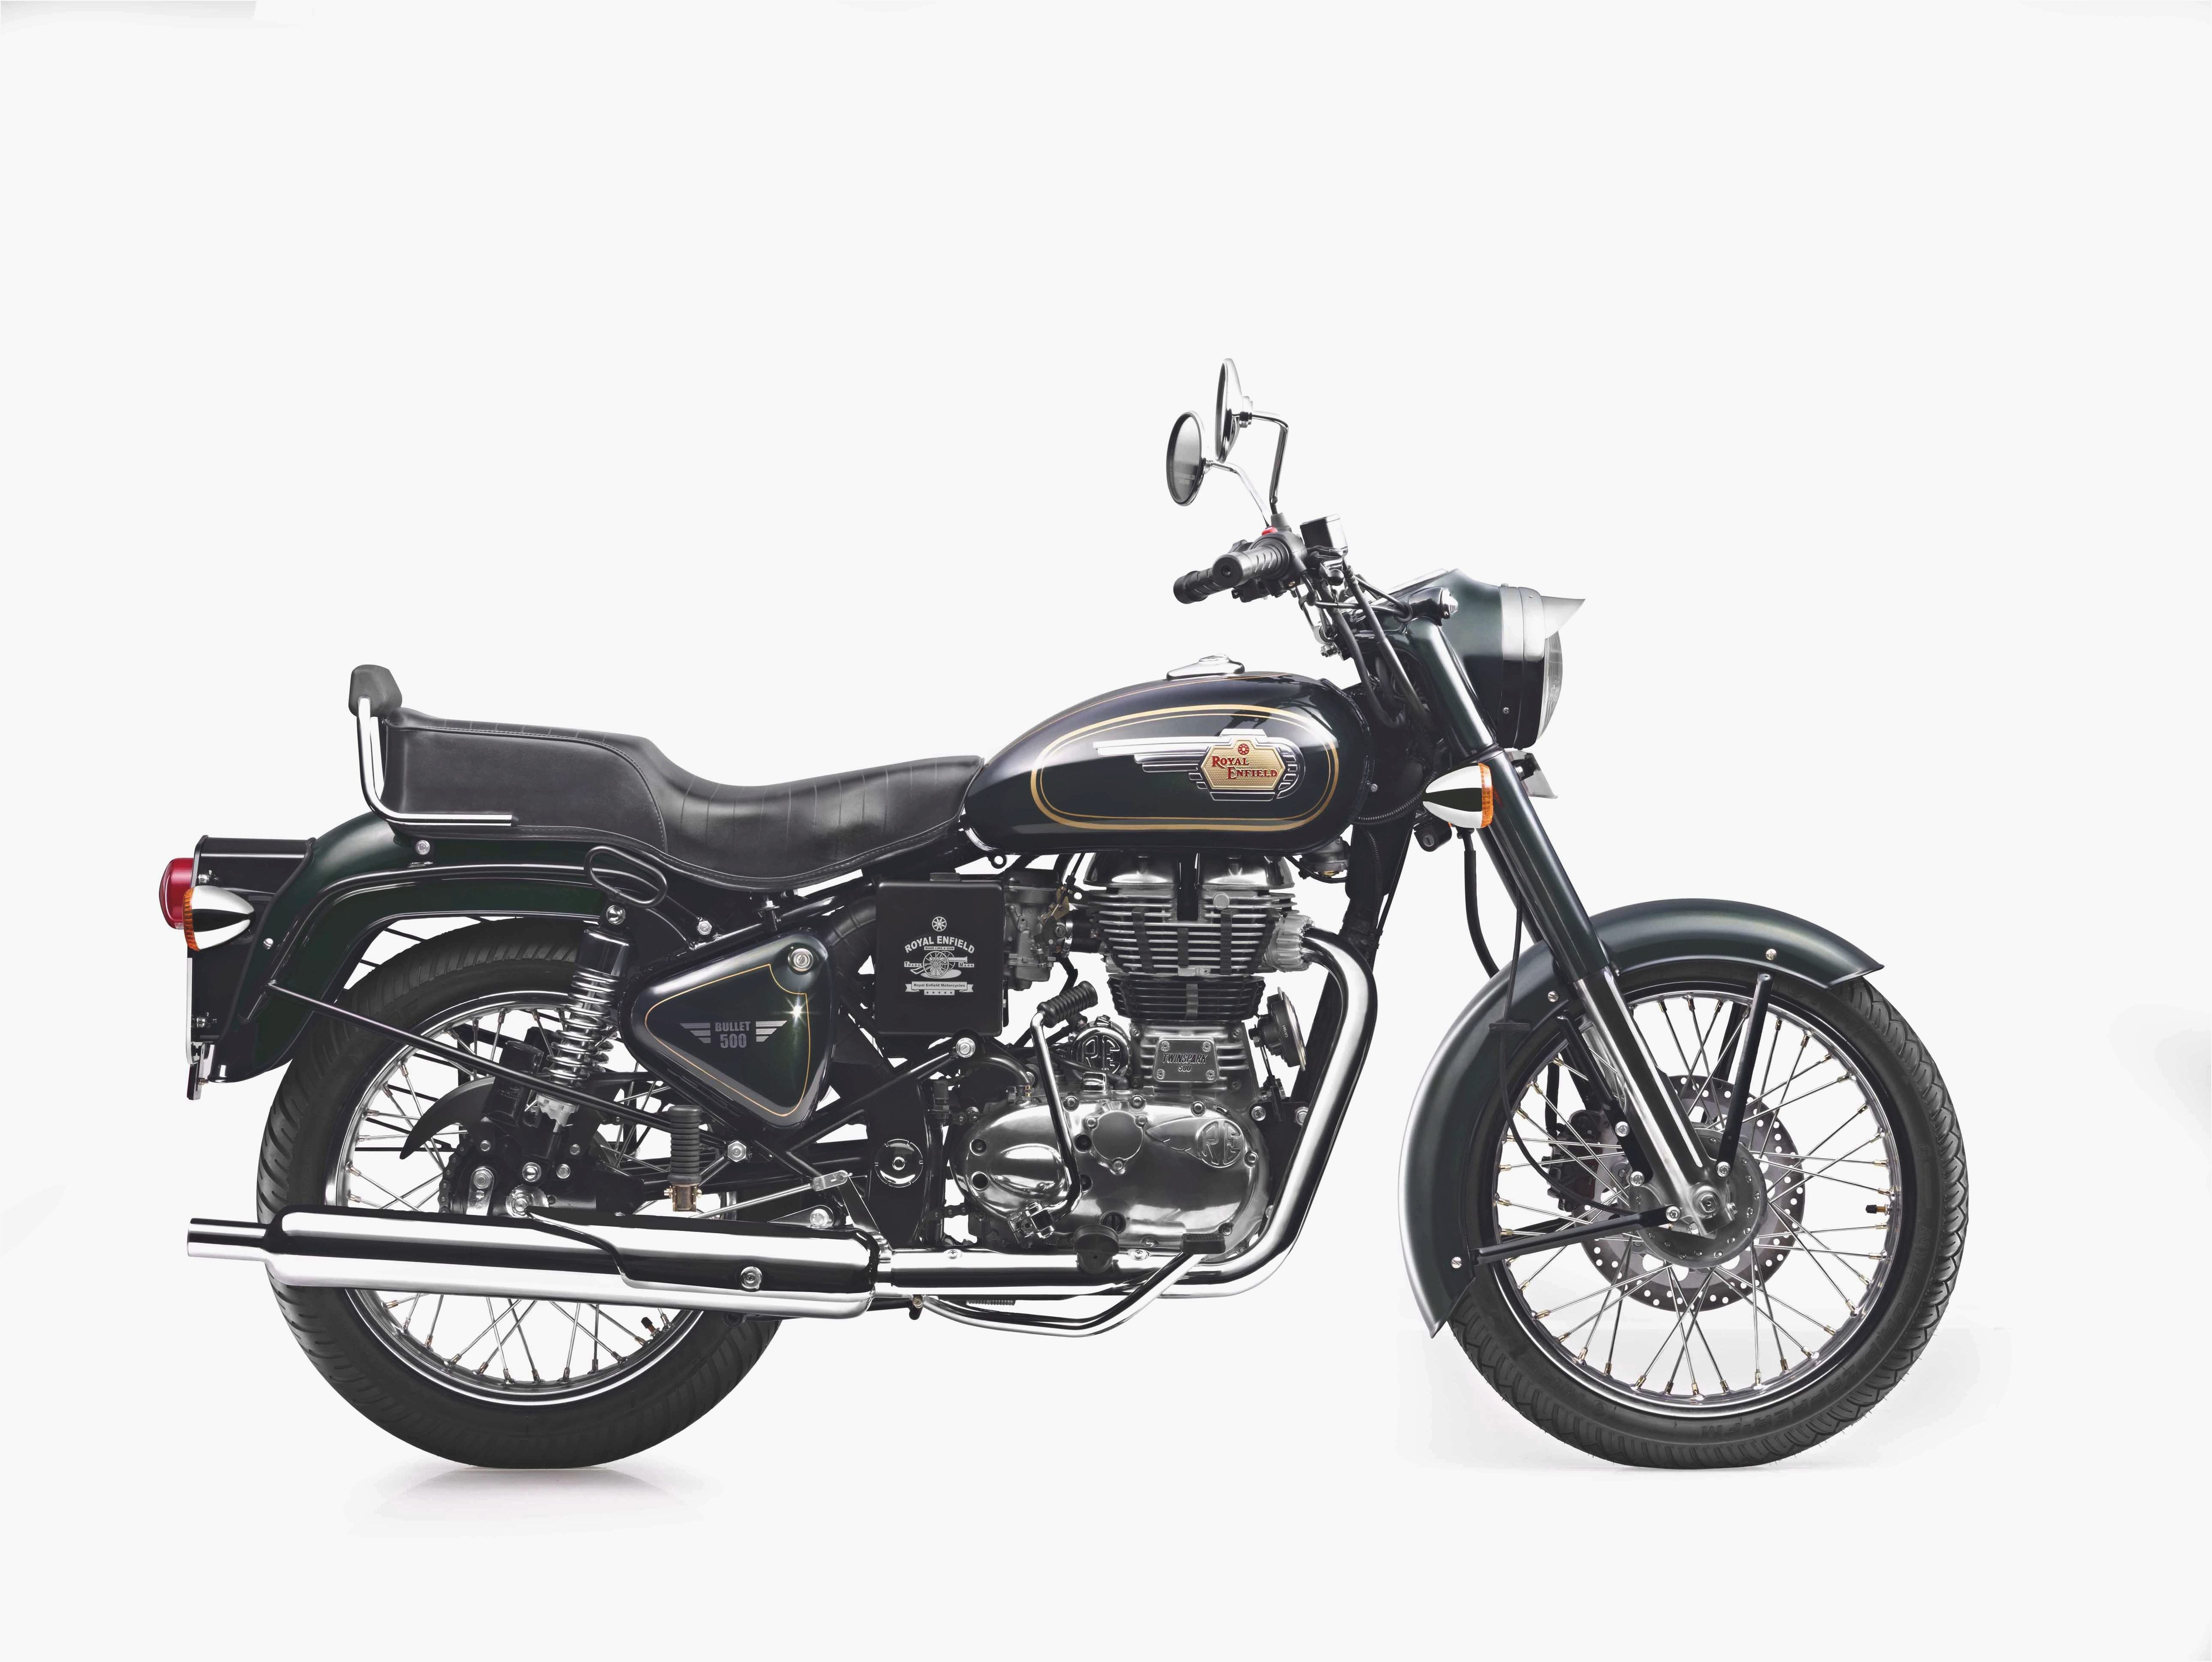 Royal Enfield Bullet 500 Army 2003 images #123840